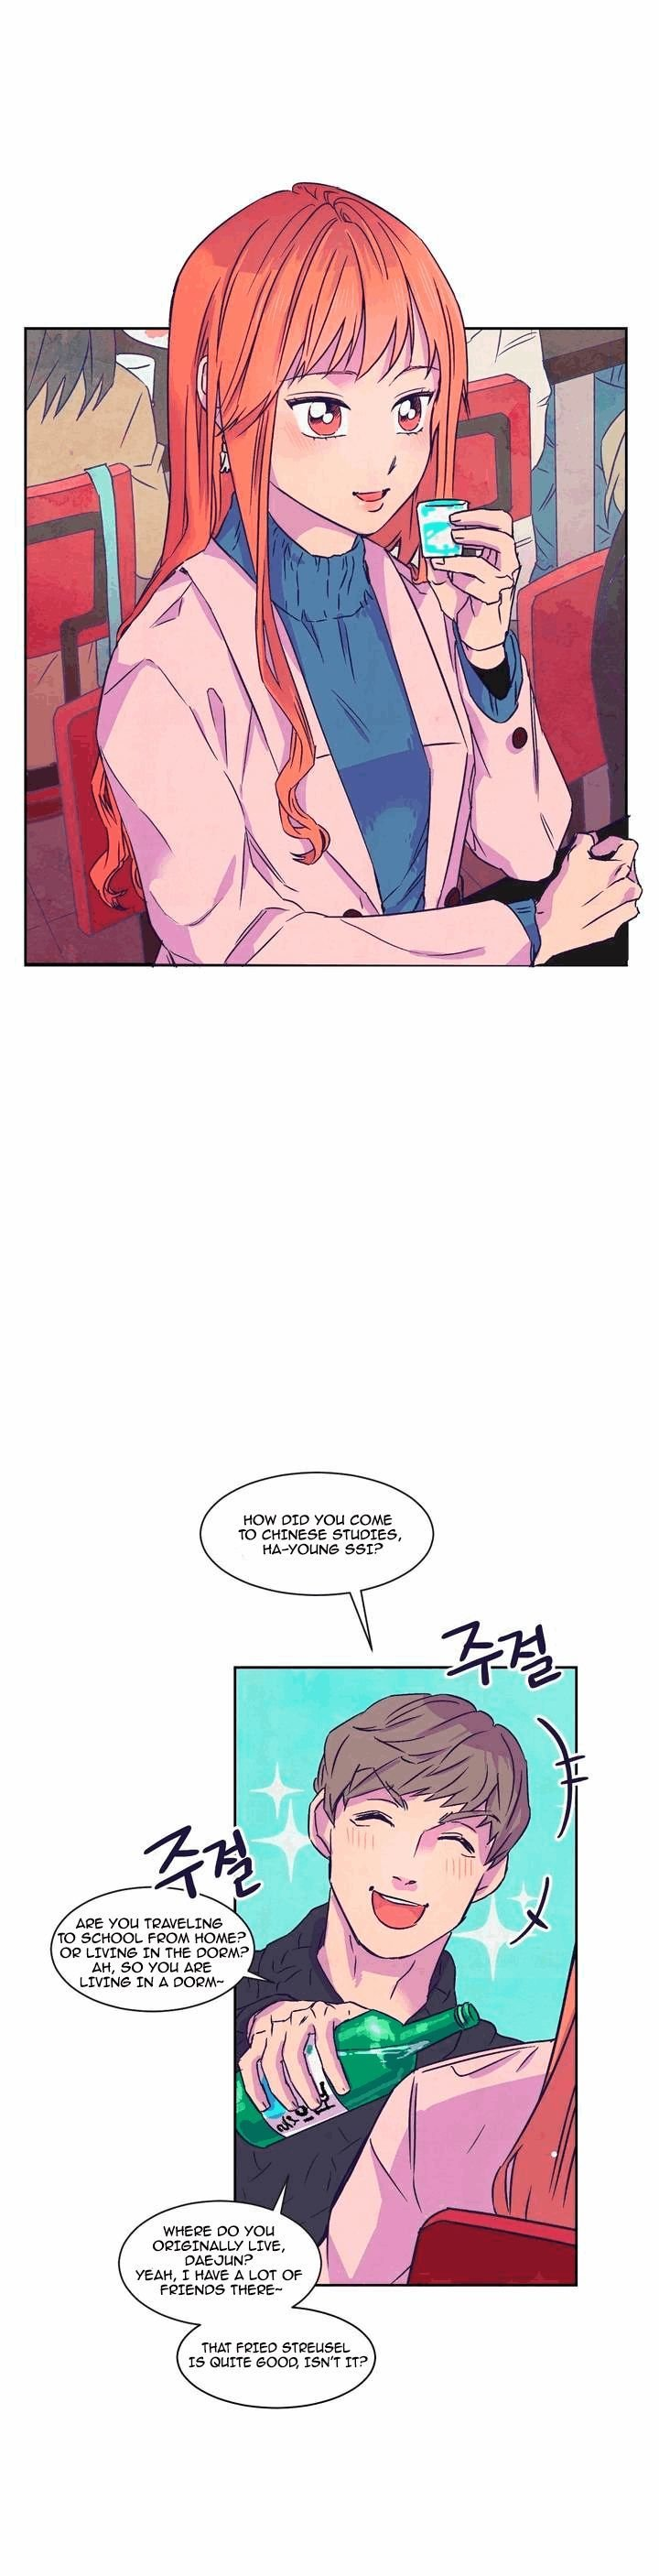 Manga Blooming Sequence - Chapter 1 Page 11